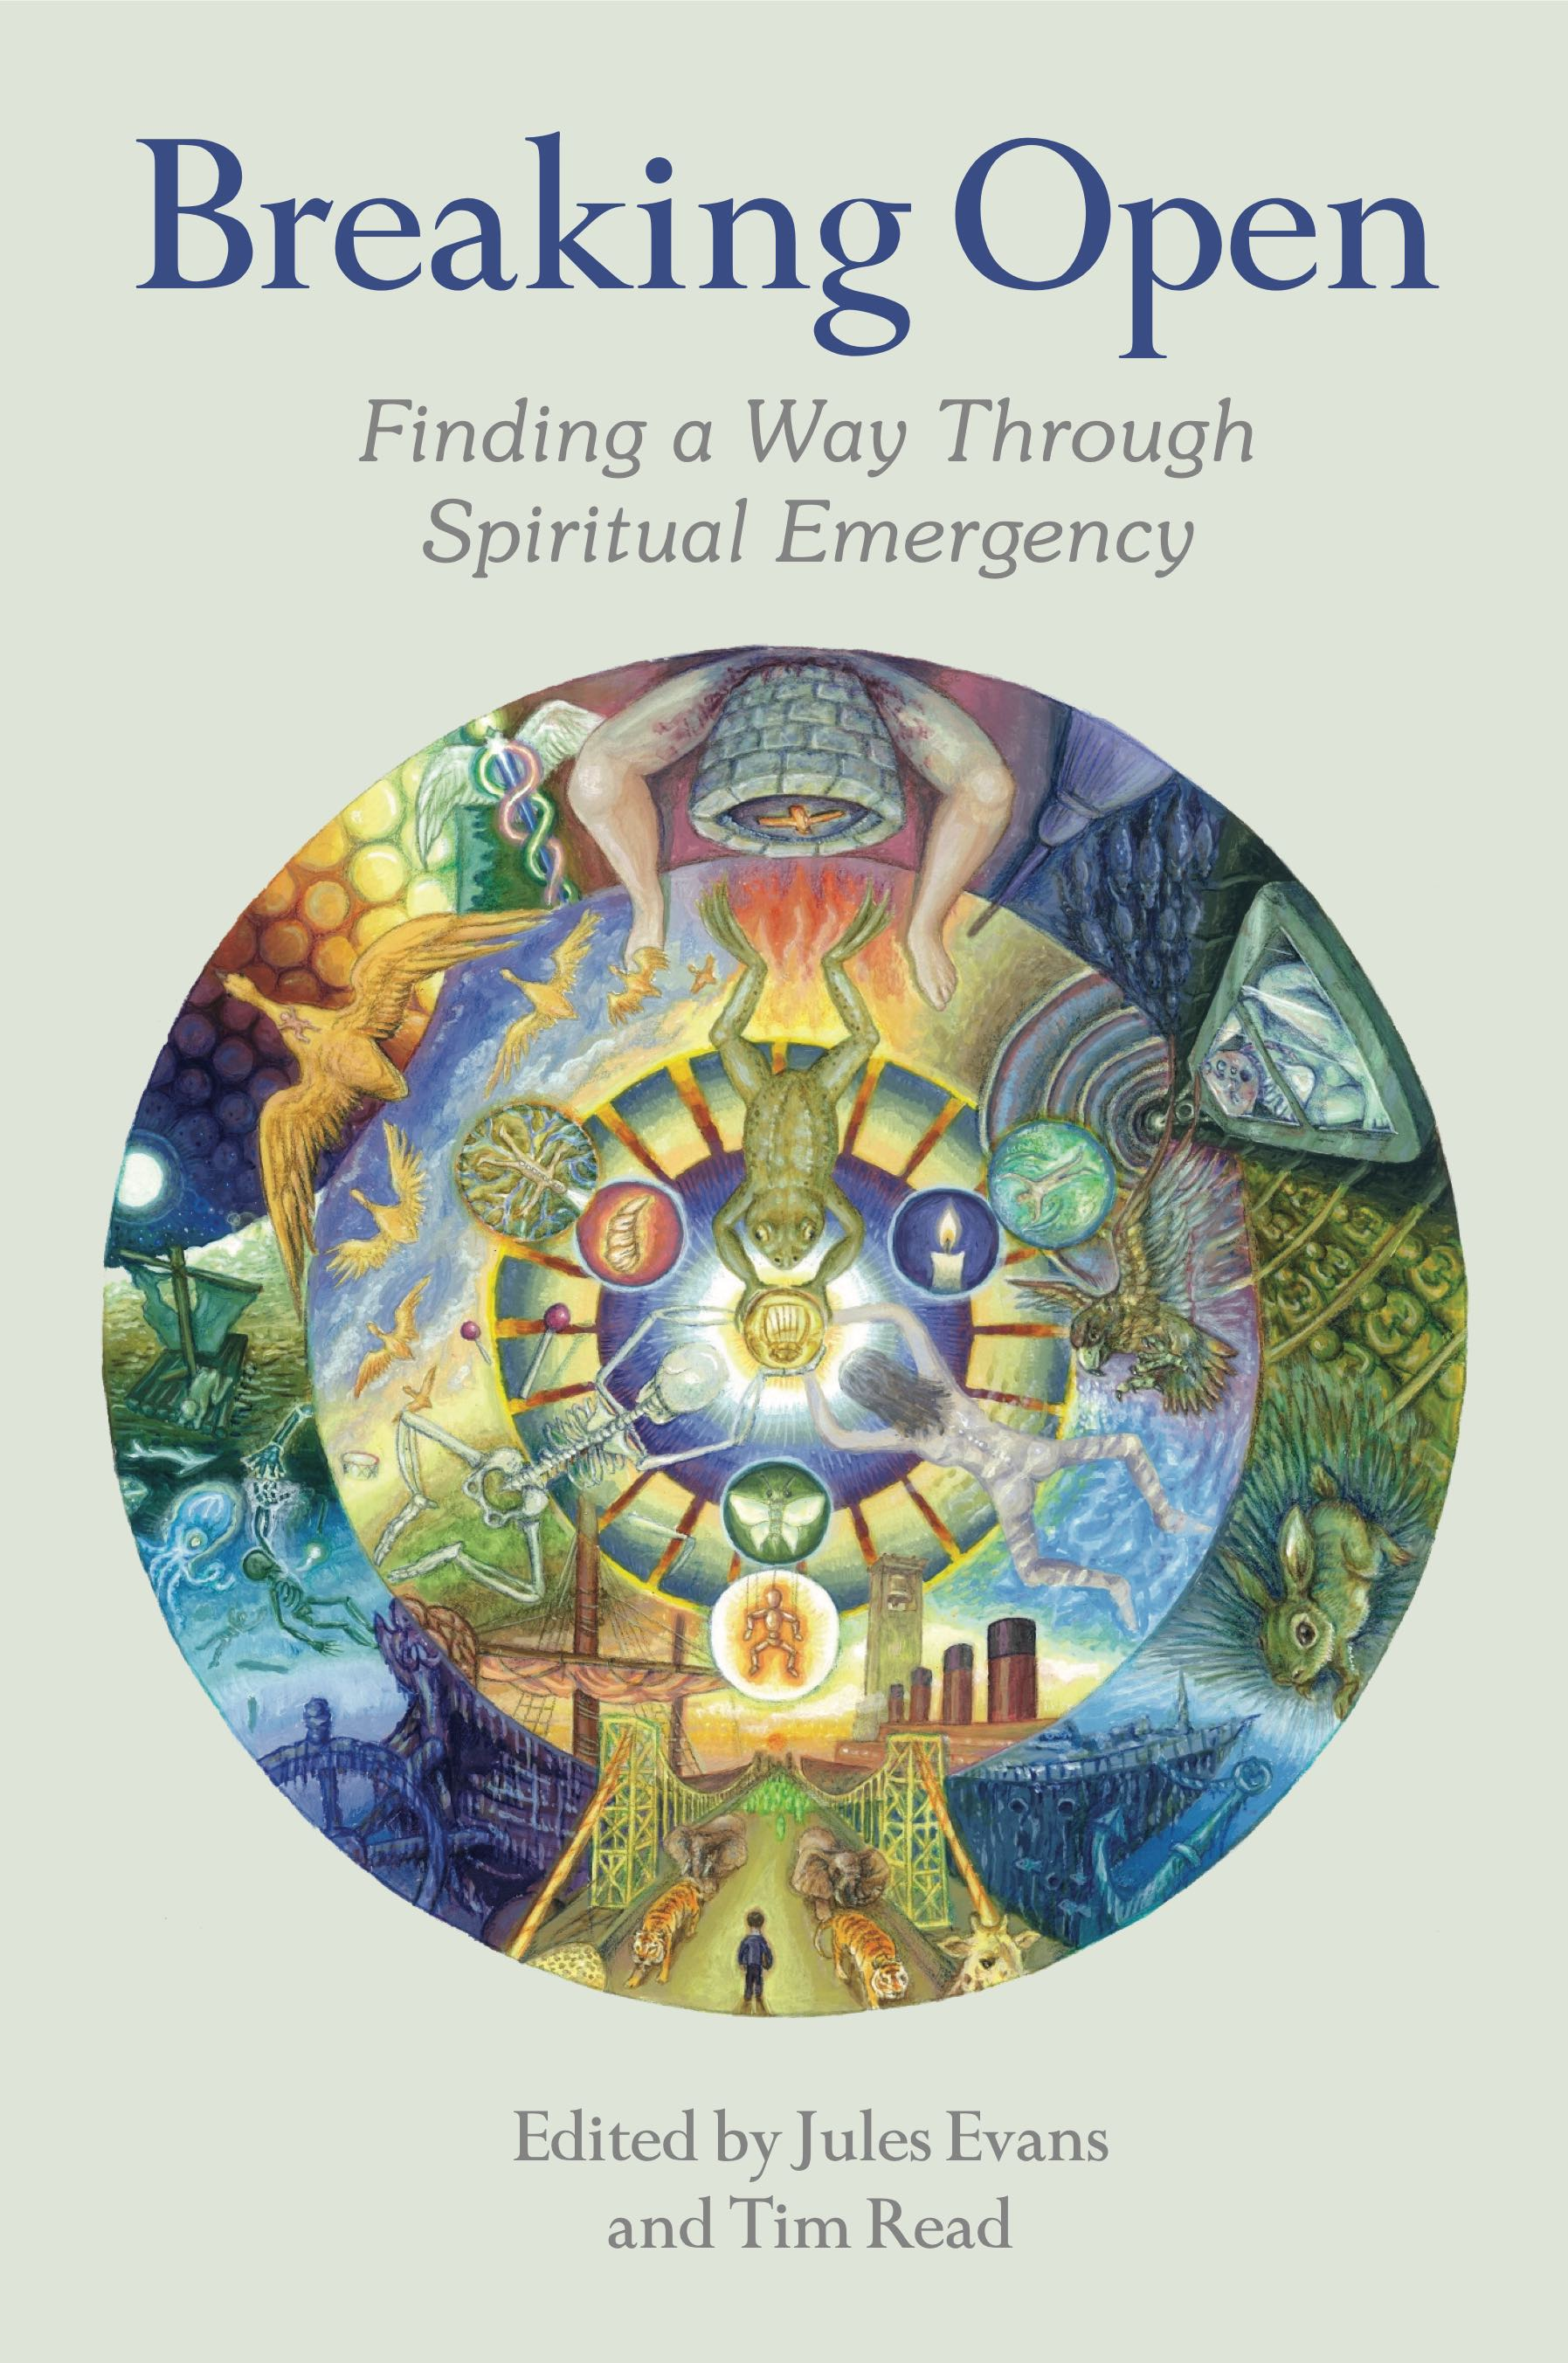 Breaking Open: Finding a Way Through Spiritual Emergencies